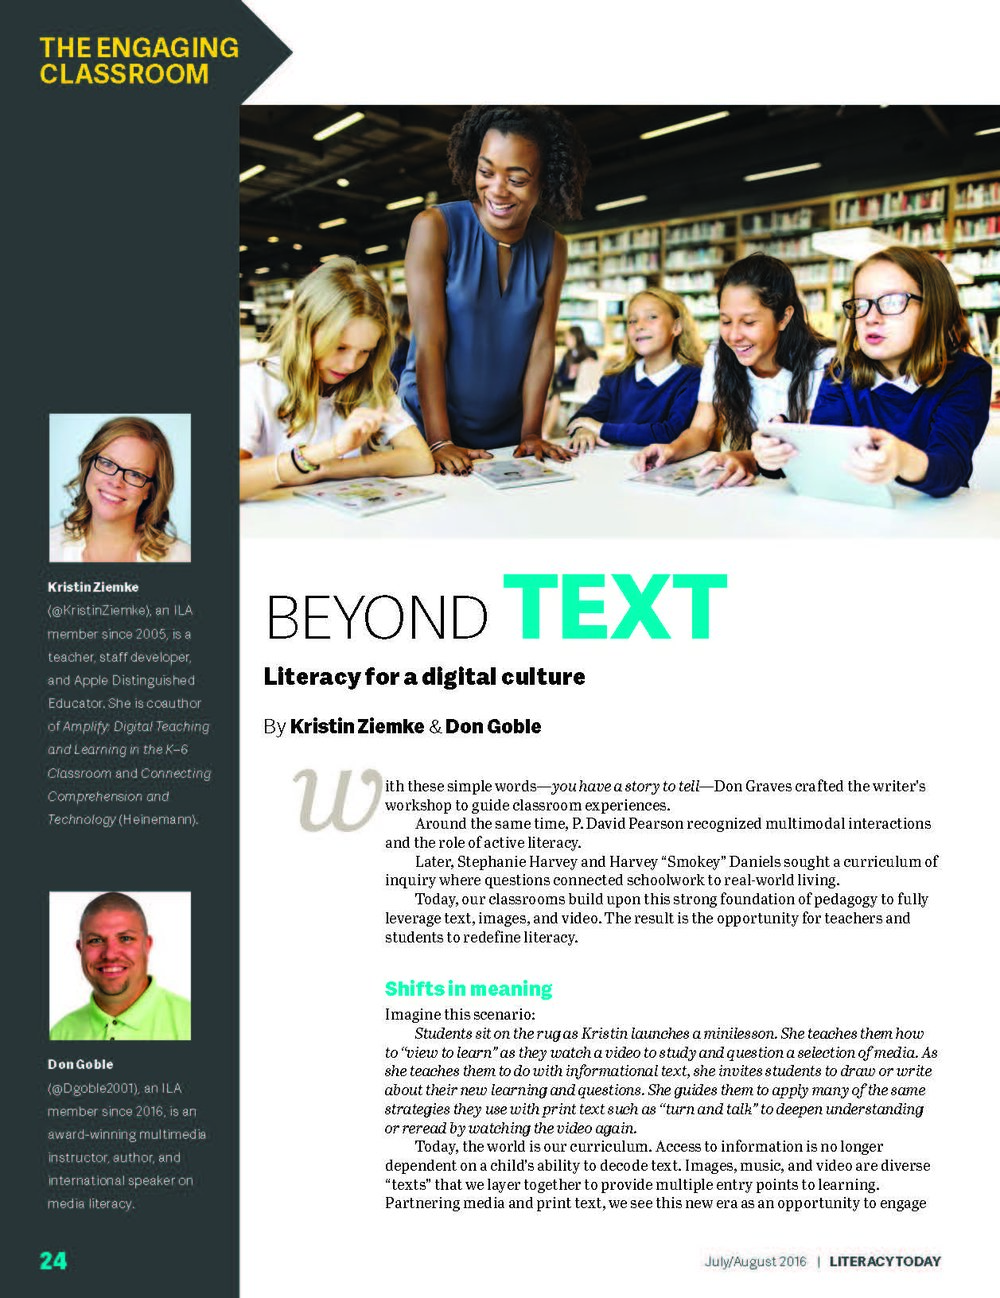 Beyond Text Literacy for a Digital Culture